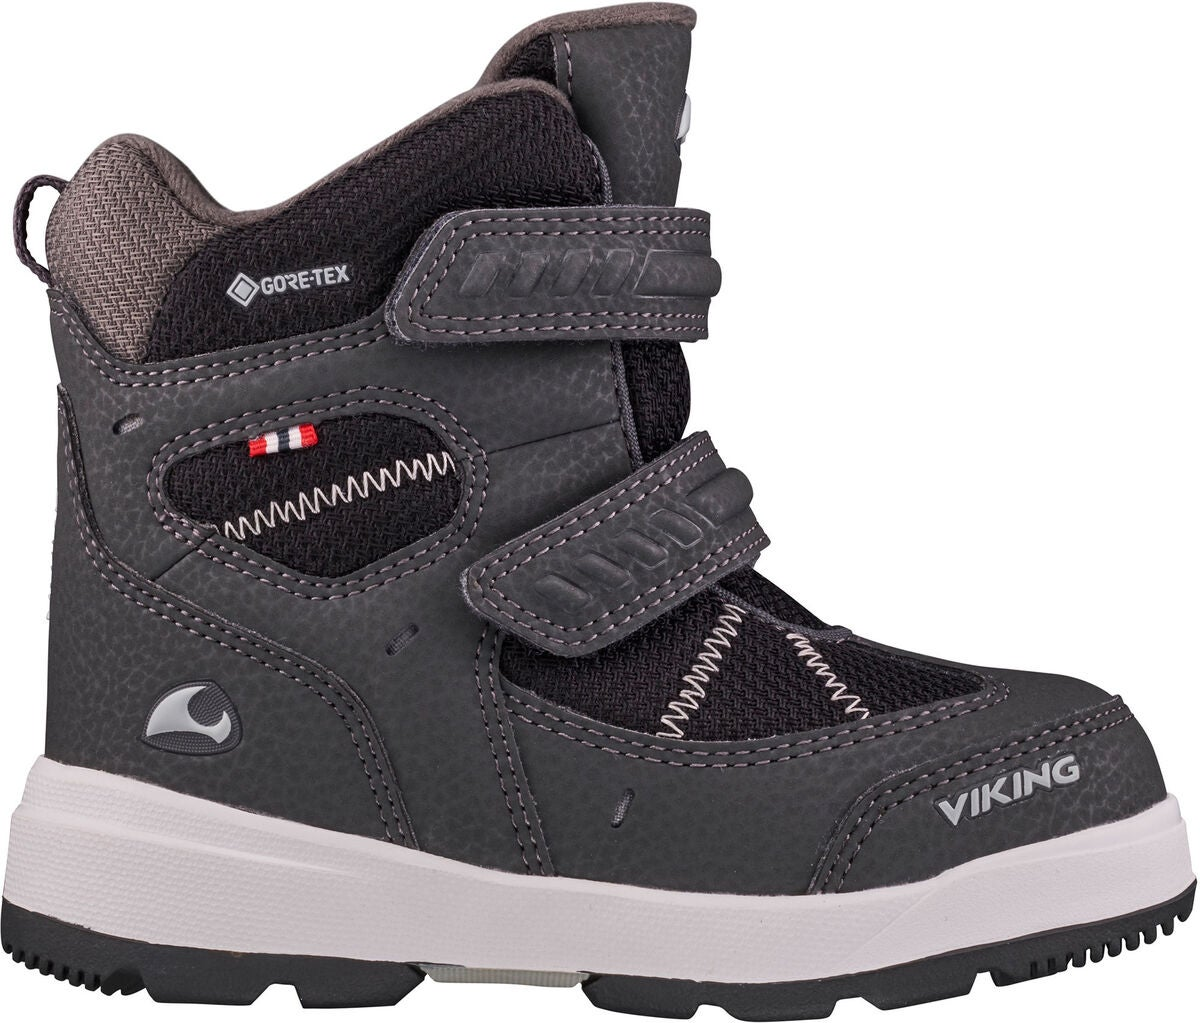 Viking Toasty II GTX Vinterkänga, Charcoal/Black